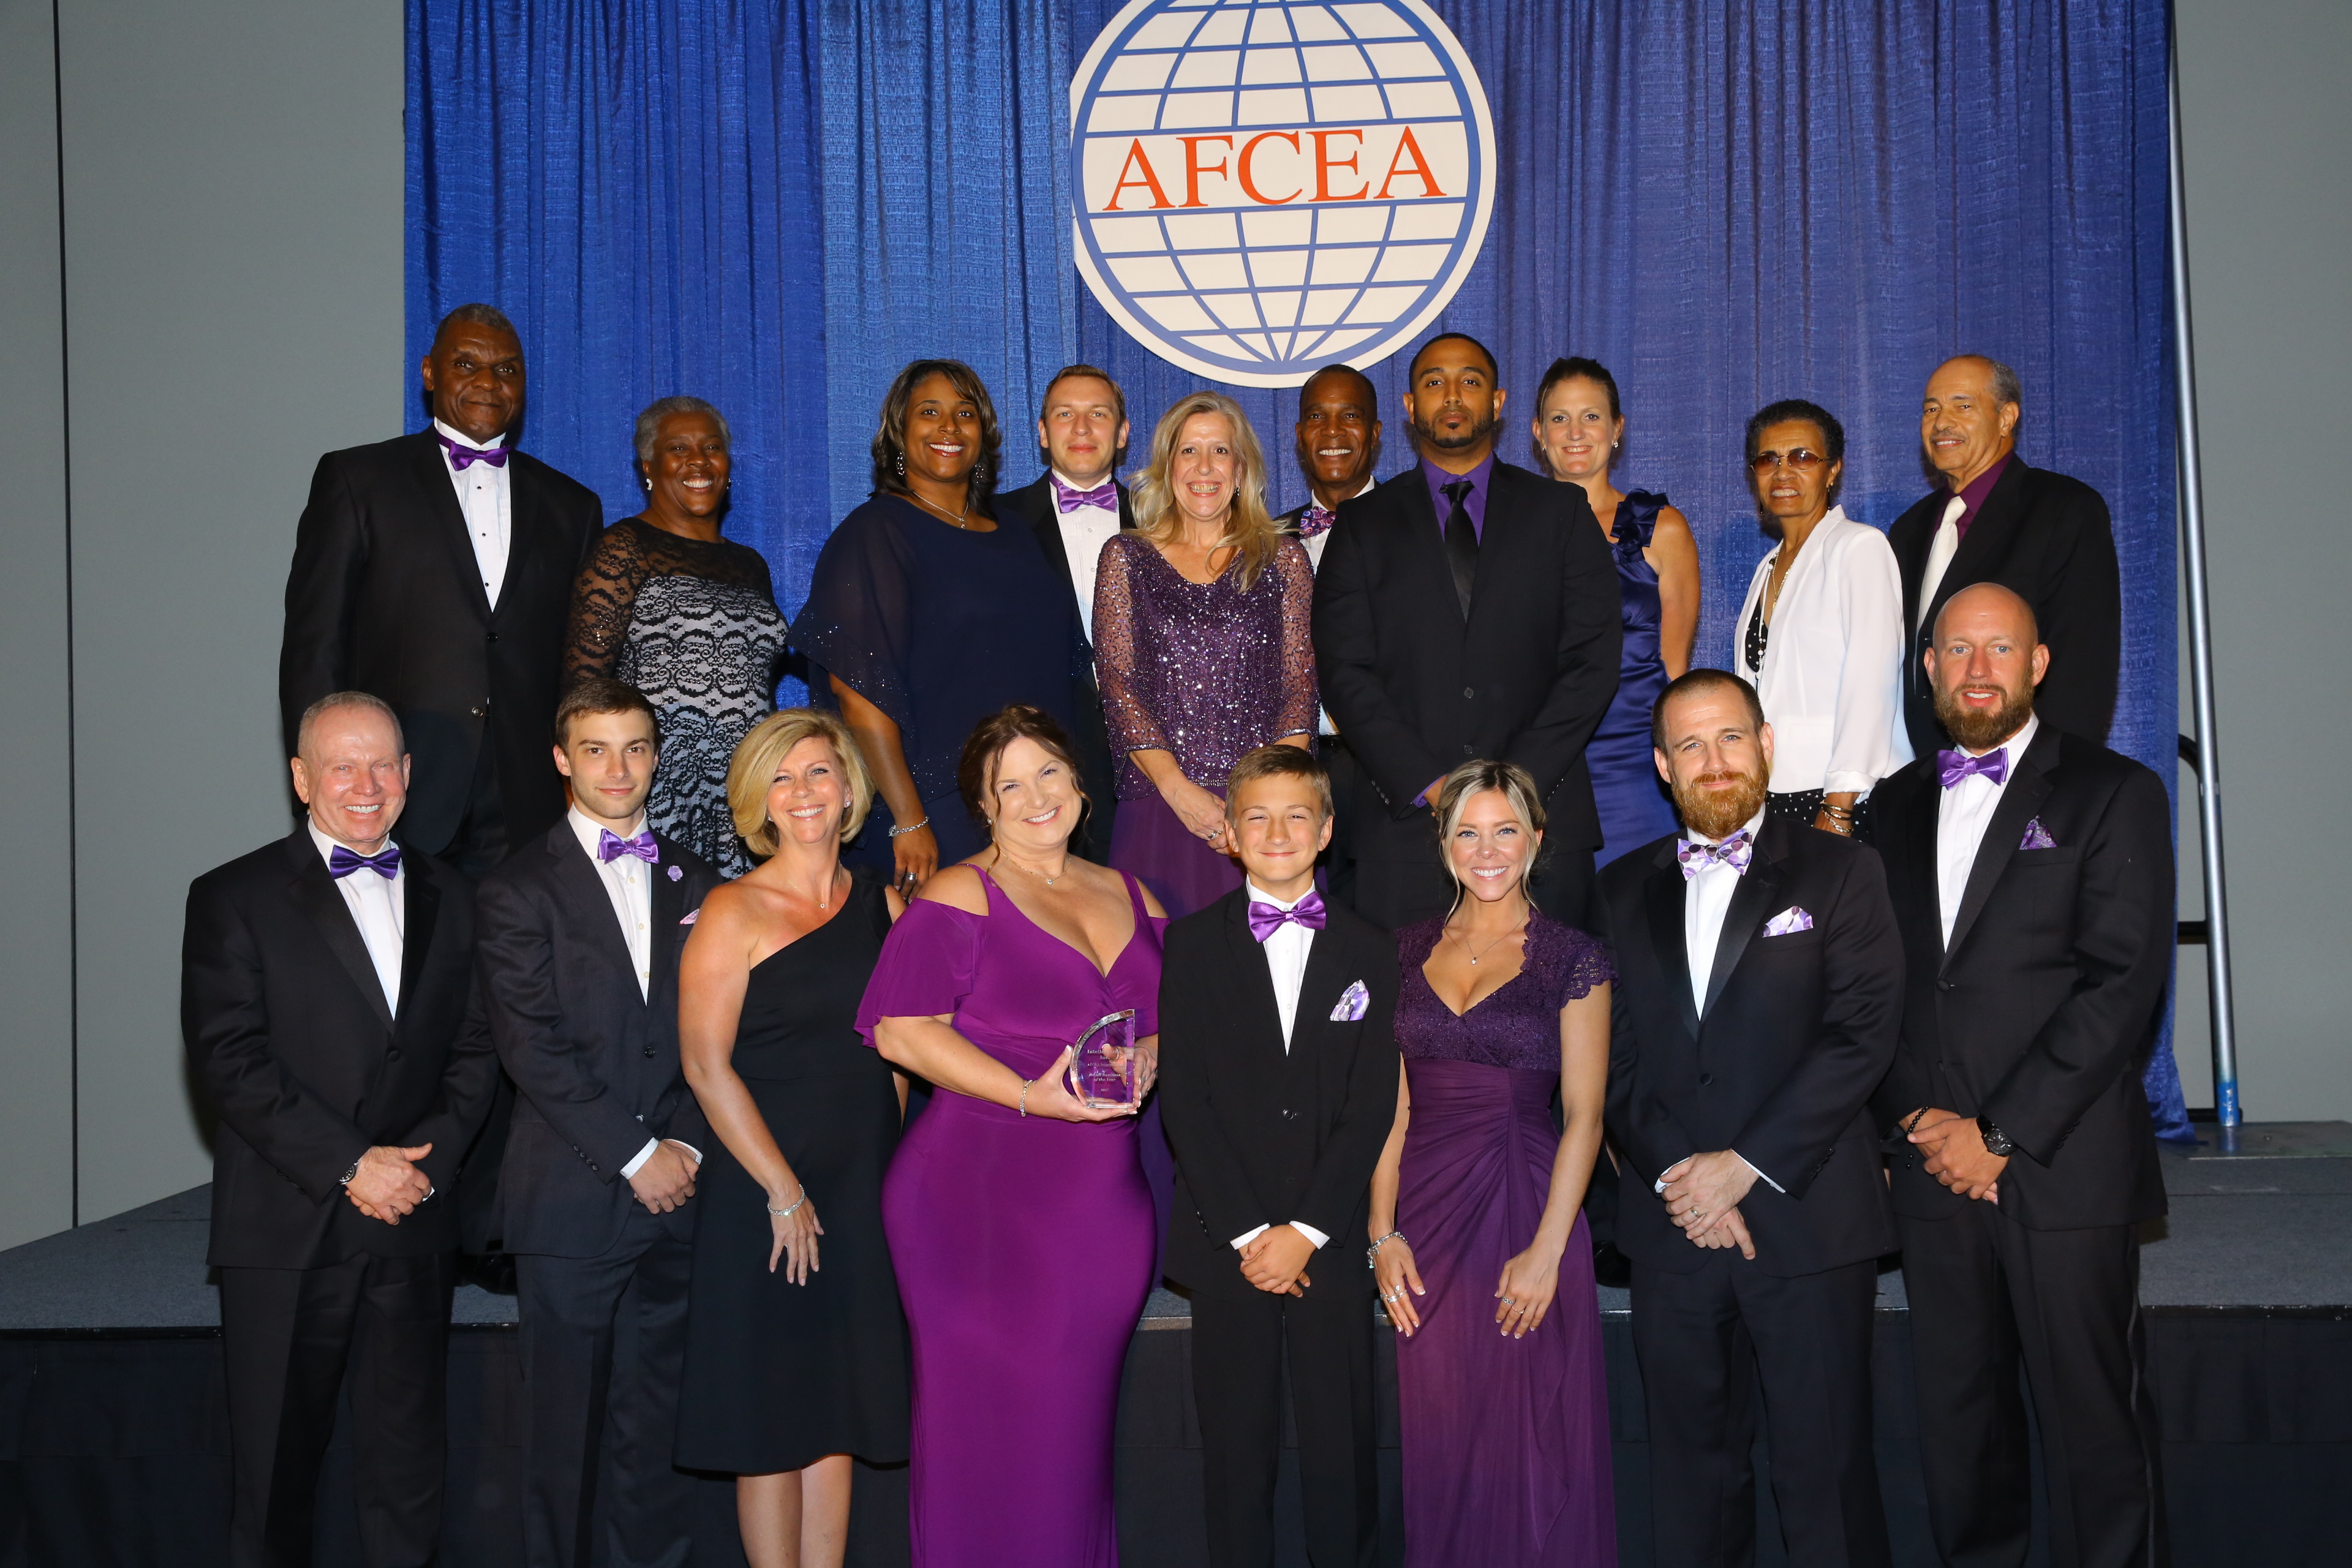 IntellecTechs Awarded AFCEA International Small Business of the Year 2017